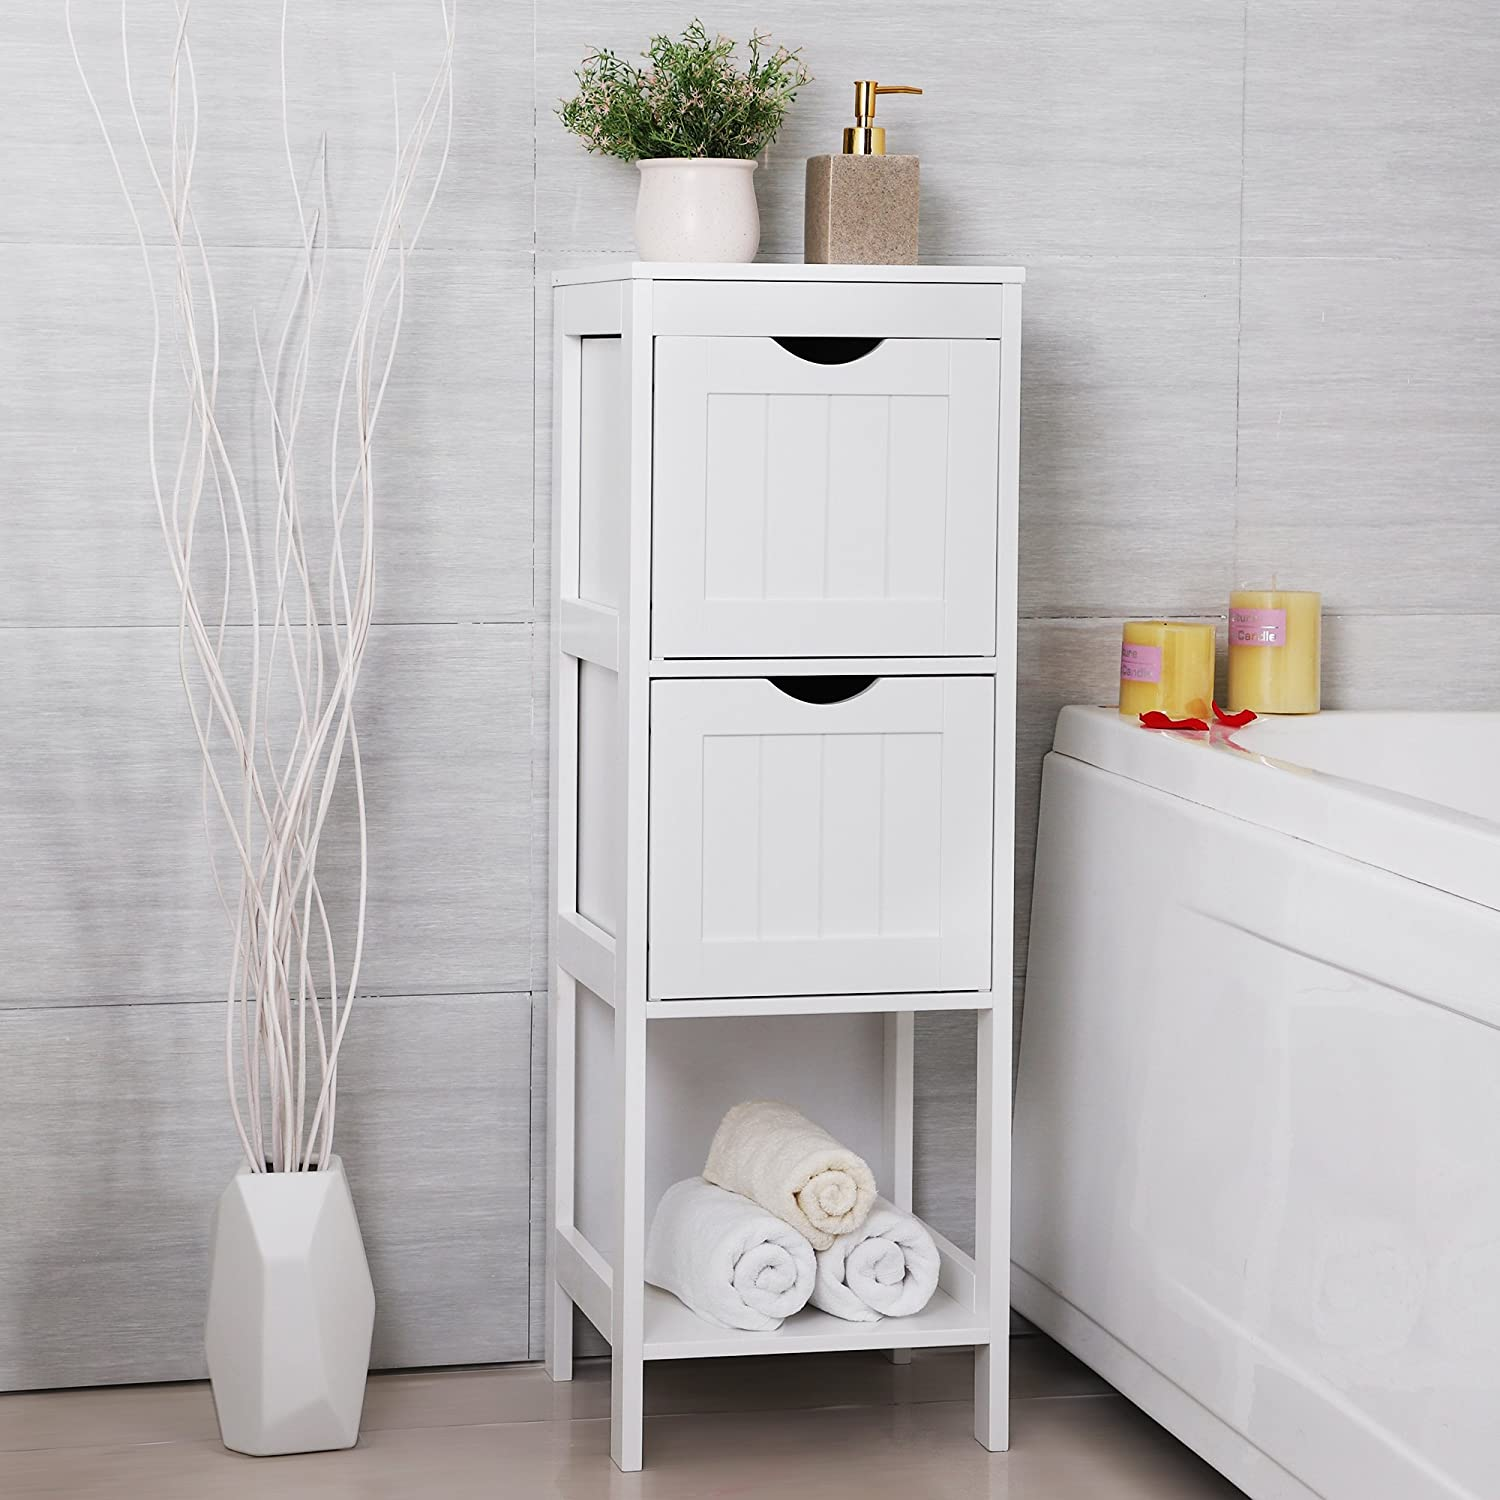 Slim White Bathroom Storage Bedside Cabinet Drawers Corner ...